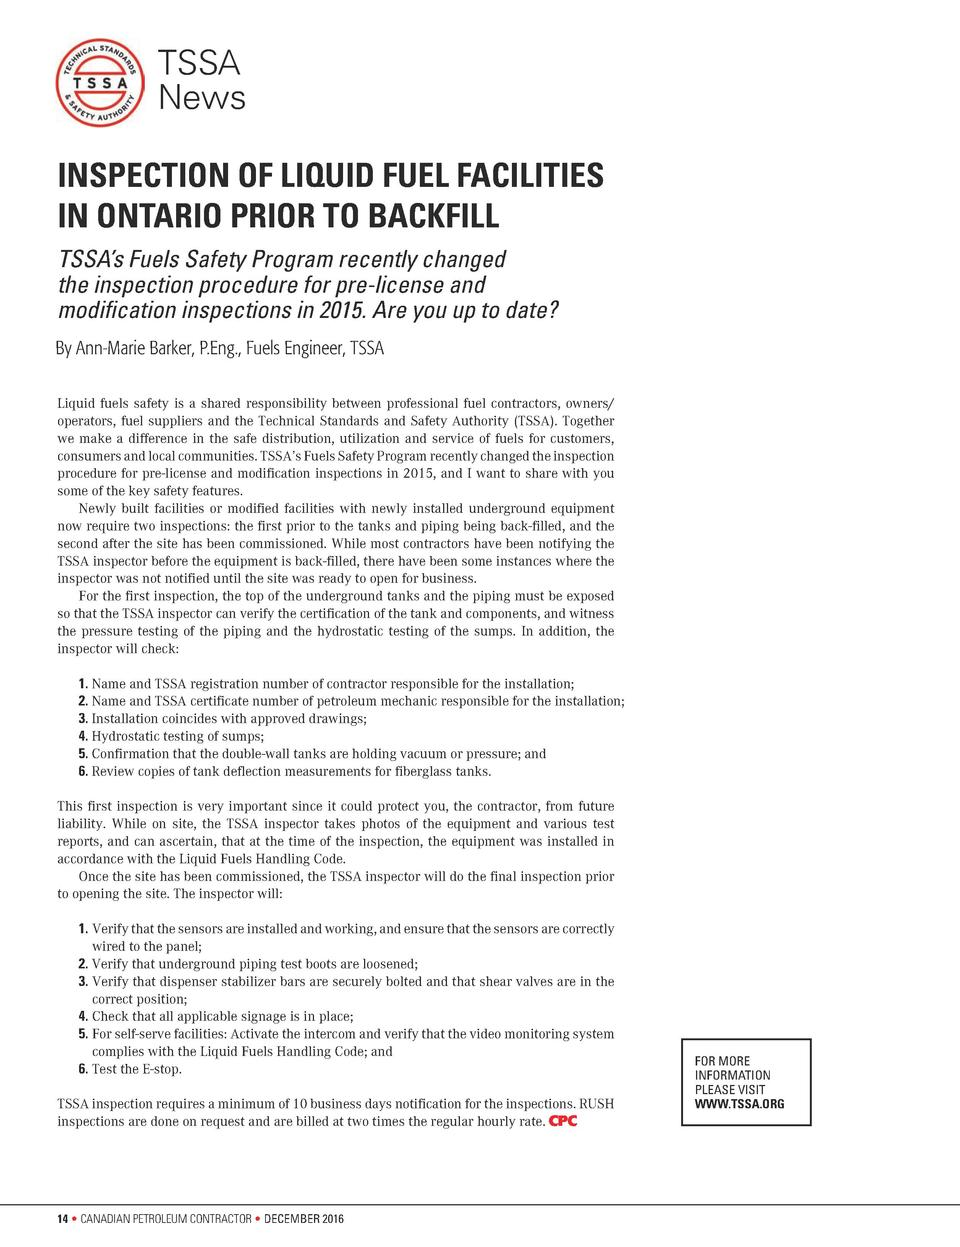 TSSA News INSPECTION OF LIQUID FUEL FACILITIES IN ONTARIO PRIOR TO BACKFILL TSSA   s Fuels Safety Program recently changed...